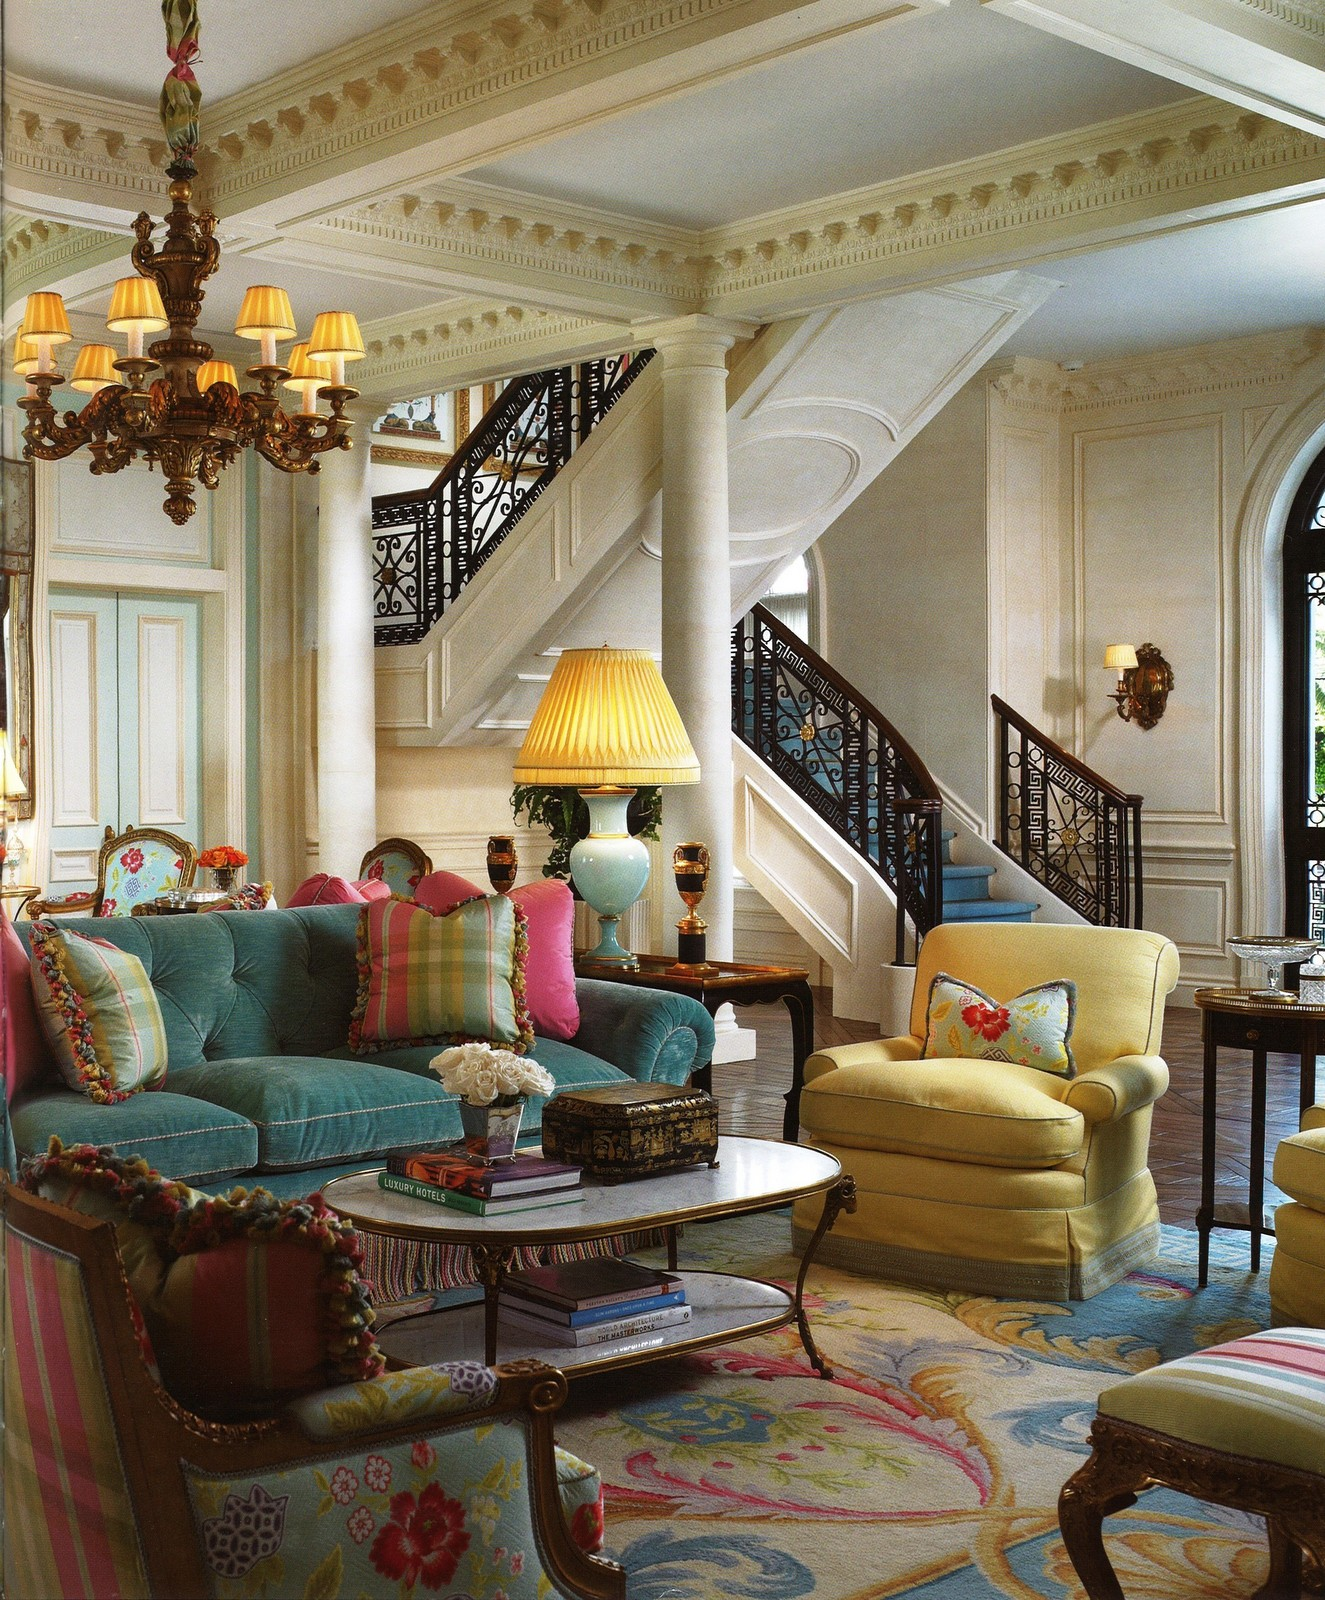 Palm Beach Chic In Miami: Stately Homes: Palm Beach Chic With